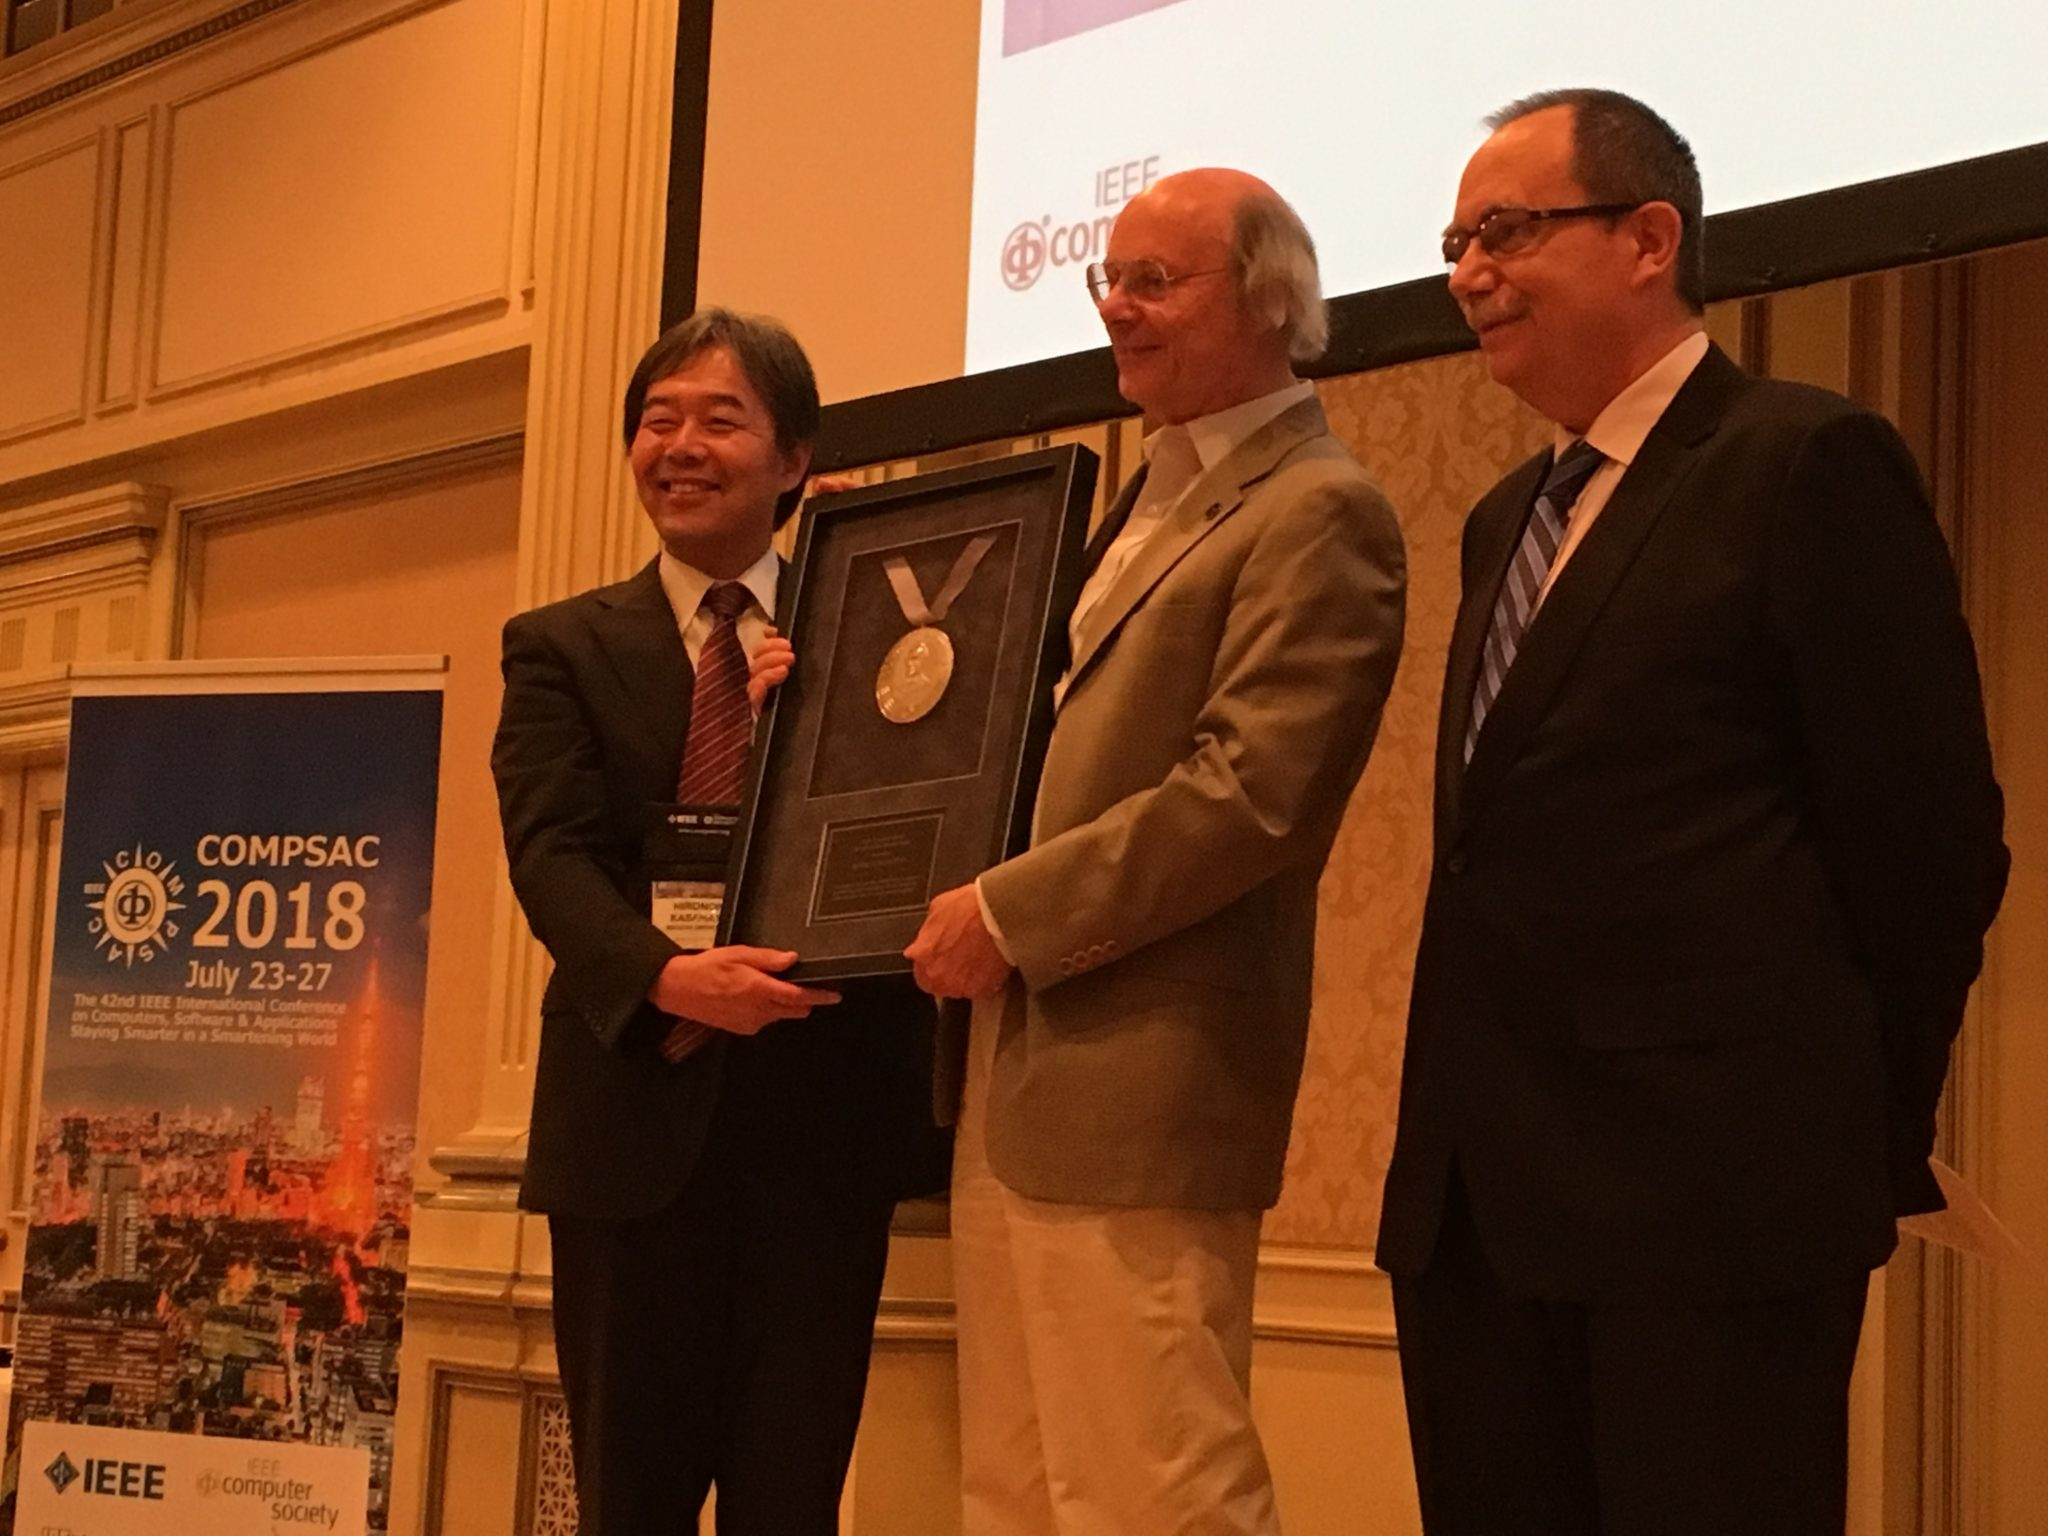 Bjarne Stroustrup (center), Managing Director in the technology division of Morgan Stanley, New York City, and visiting professor at Columbia University, receives the IEEE Computer Society's 2018 Computer Pioneer Award.